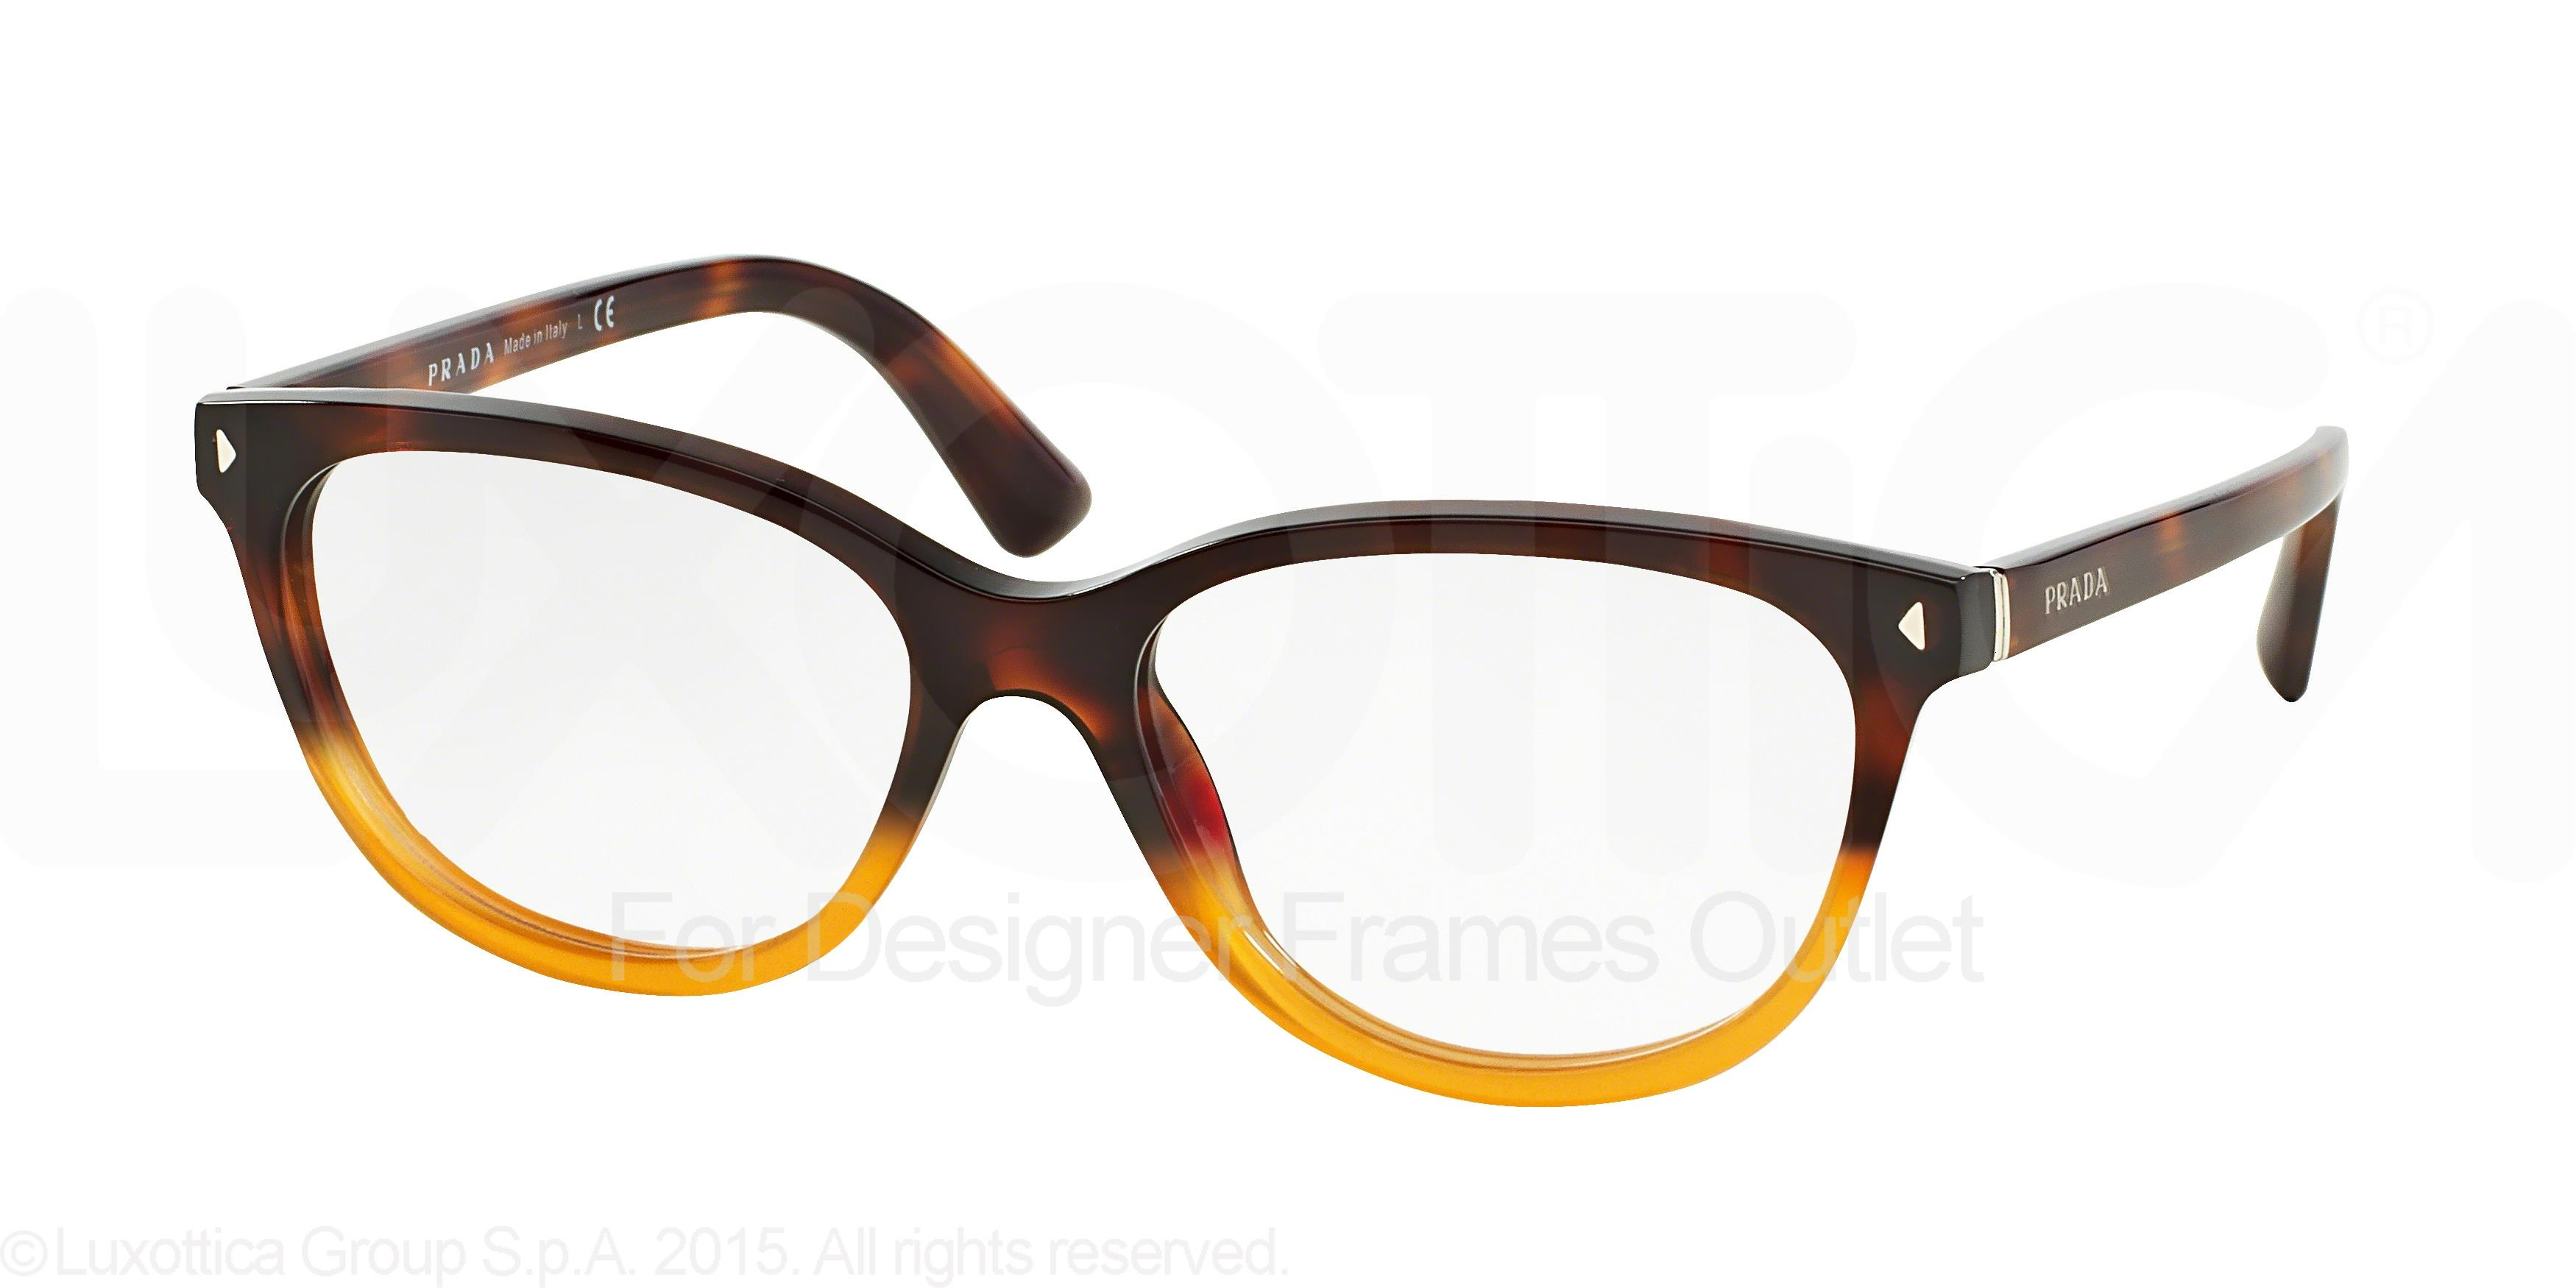 4b82555a551 Designer Frames Outlet. Prada PR14RV Journal